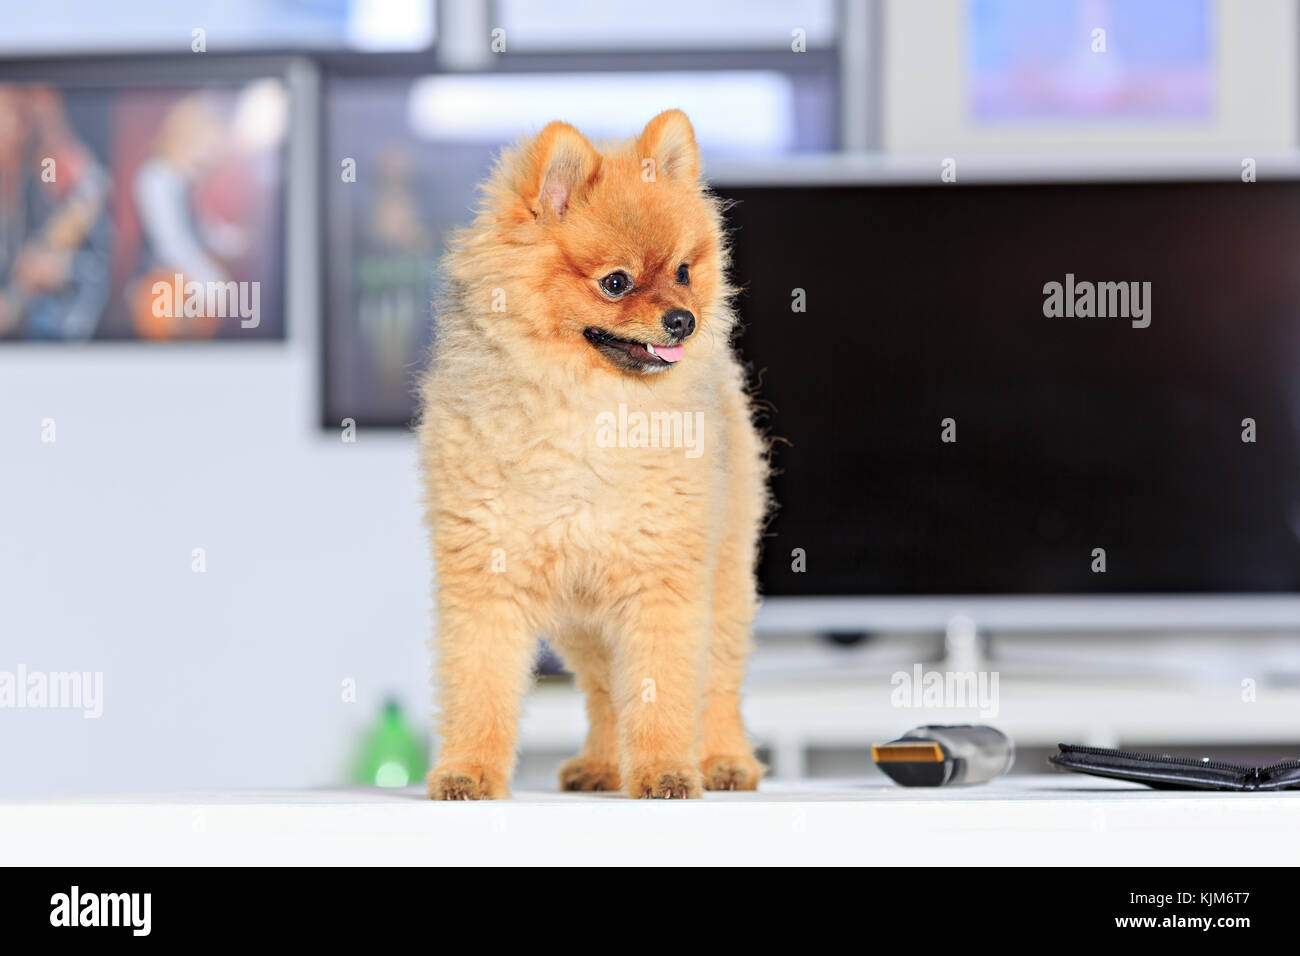 Scenes Of Dog Grooming Salon Life With A Pomeranian Dog Stock Photo